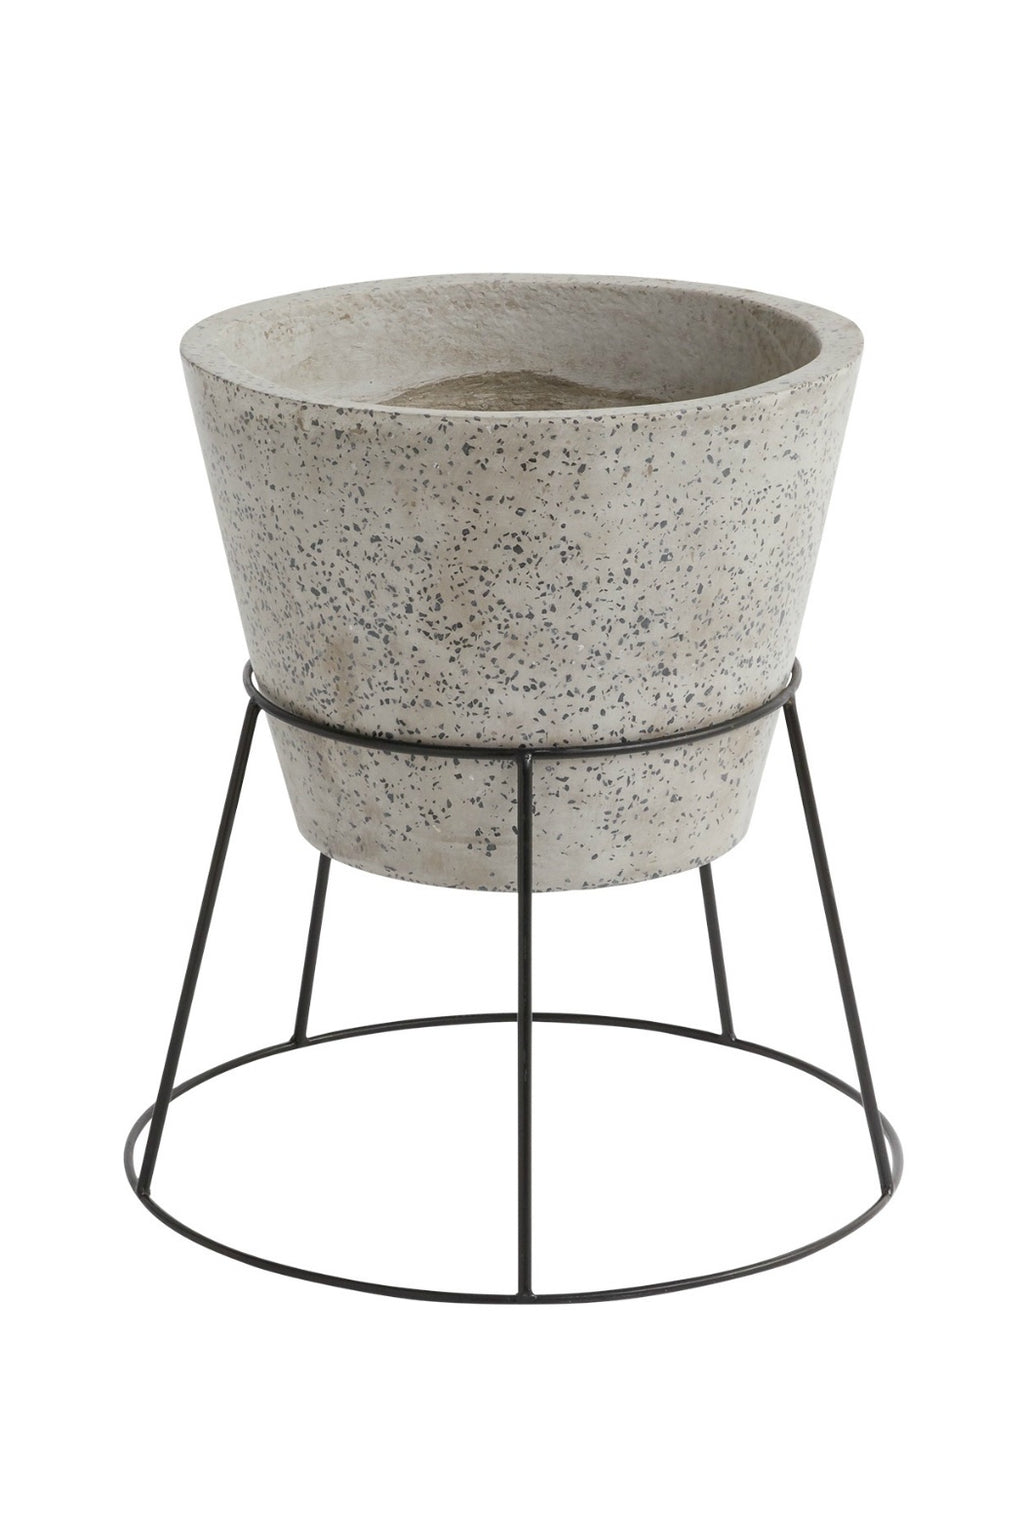 Accent Decor Filli Concrete Plant Stand